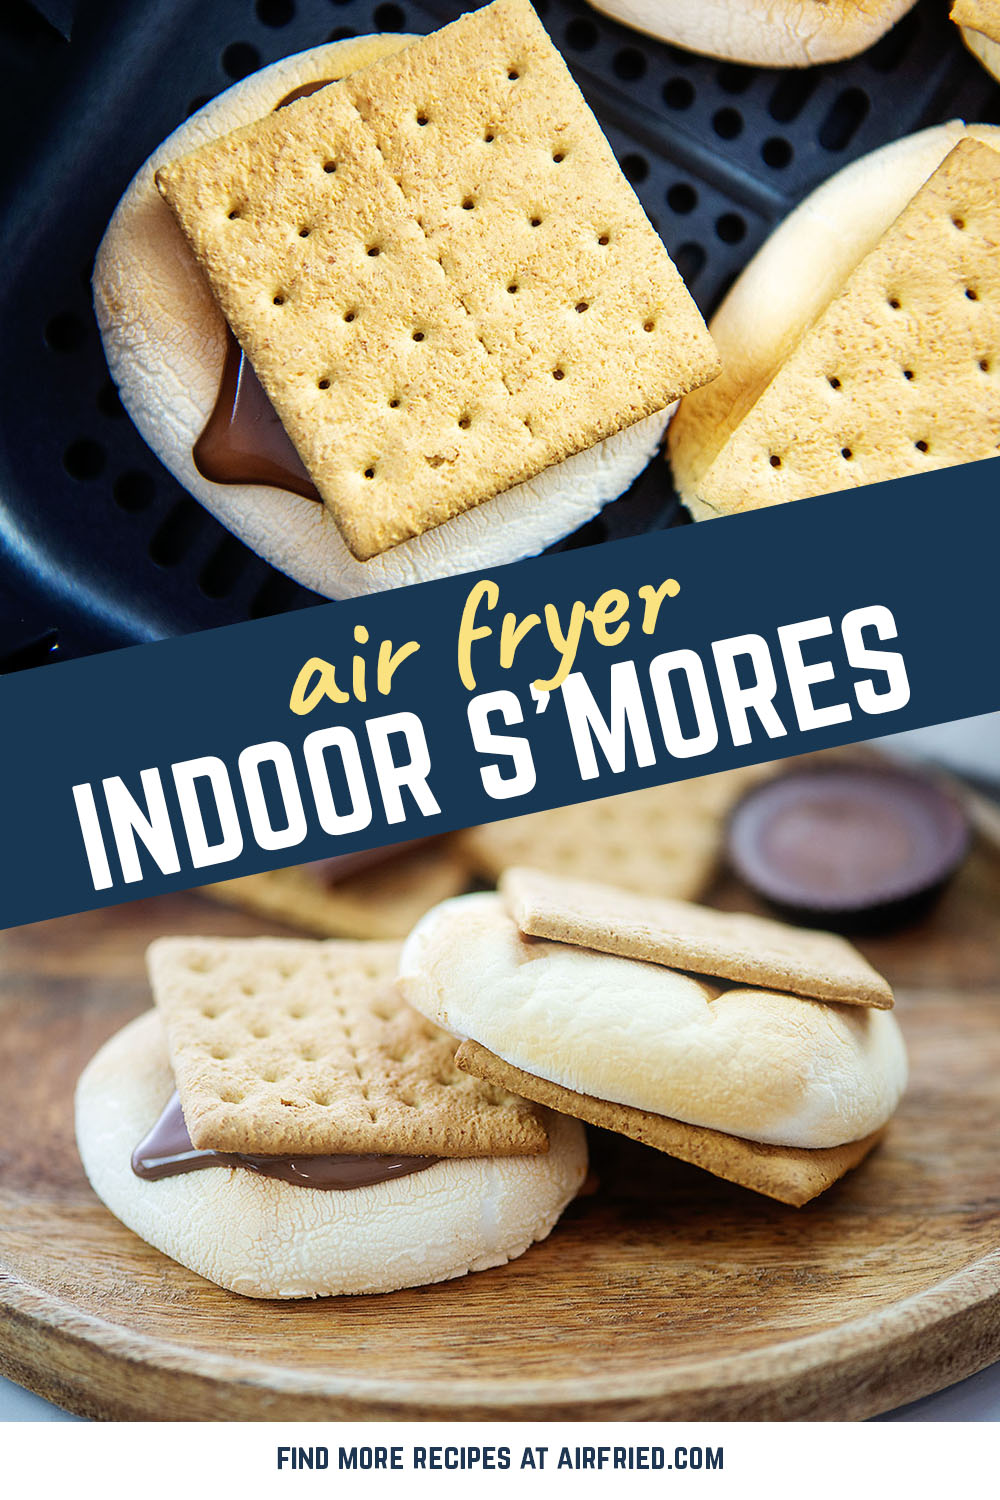 Perfectly toasted marshmallows come straight from your air fryer with these indoor s'mores! Who needs a campfire anyway?